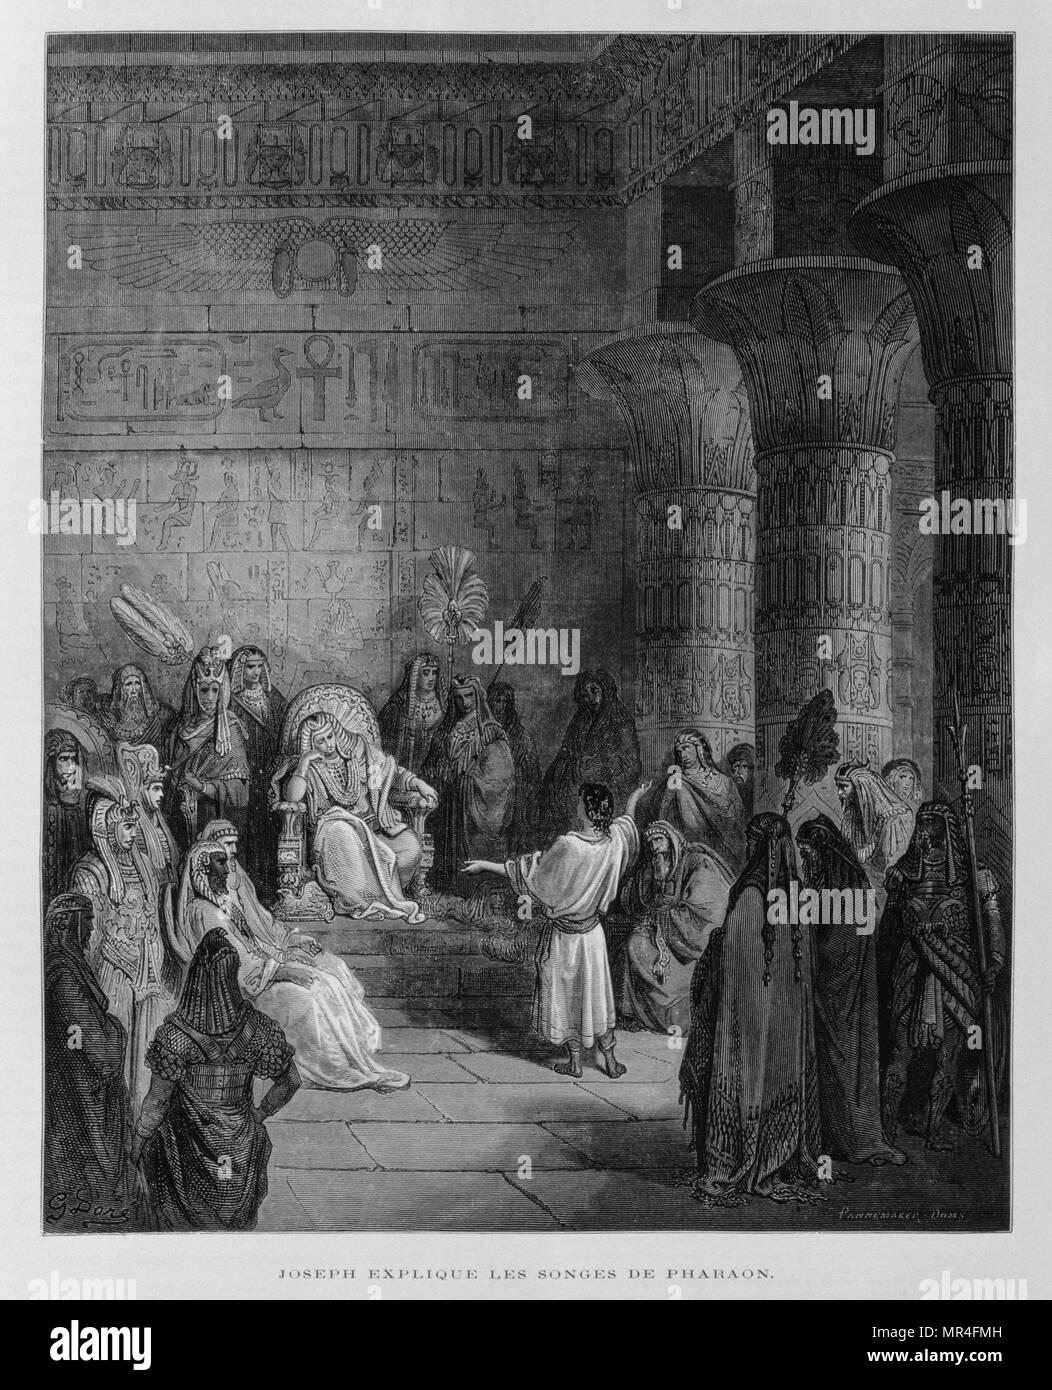 Joseph interprets the dreams of the Pharaoh of Egypt, Illustration from the Dore Bible 1866. In 1866, the French artist and illustrator Gustave Doré (1832–1883), published a series of 241 wood engravings for a new deluxe edition of the 1843 French translation of the Vulgate Bible, popularly known as the Bible de Tours. This new edition was known as La Grande Bible de Tours and its illustrations were immensely successful. - Stock Image